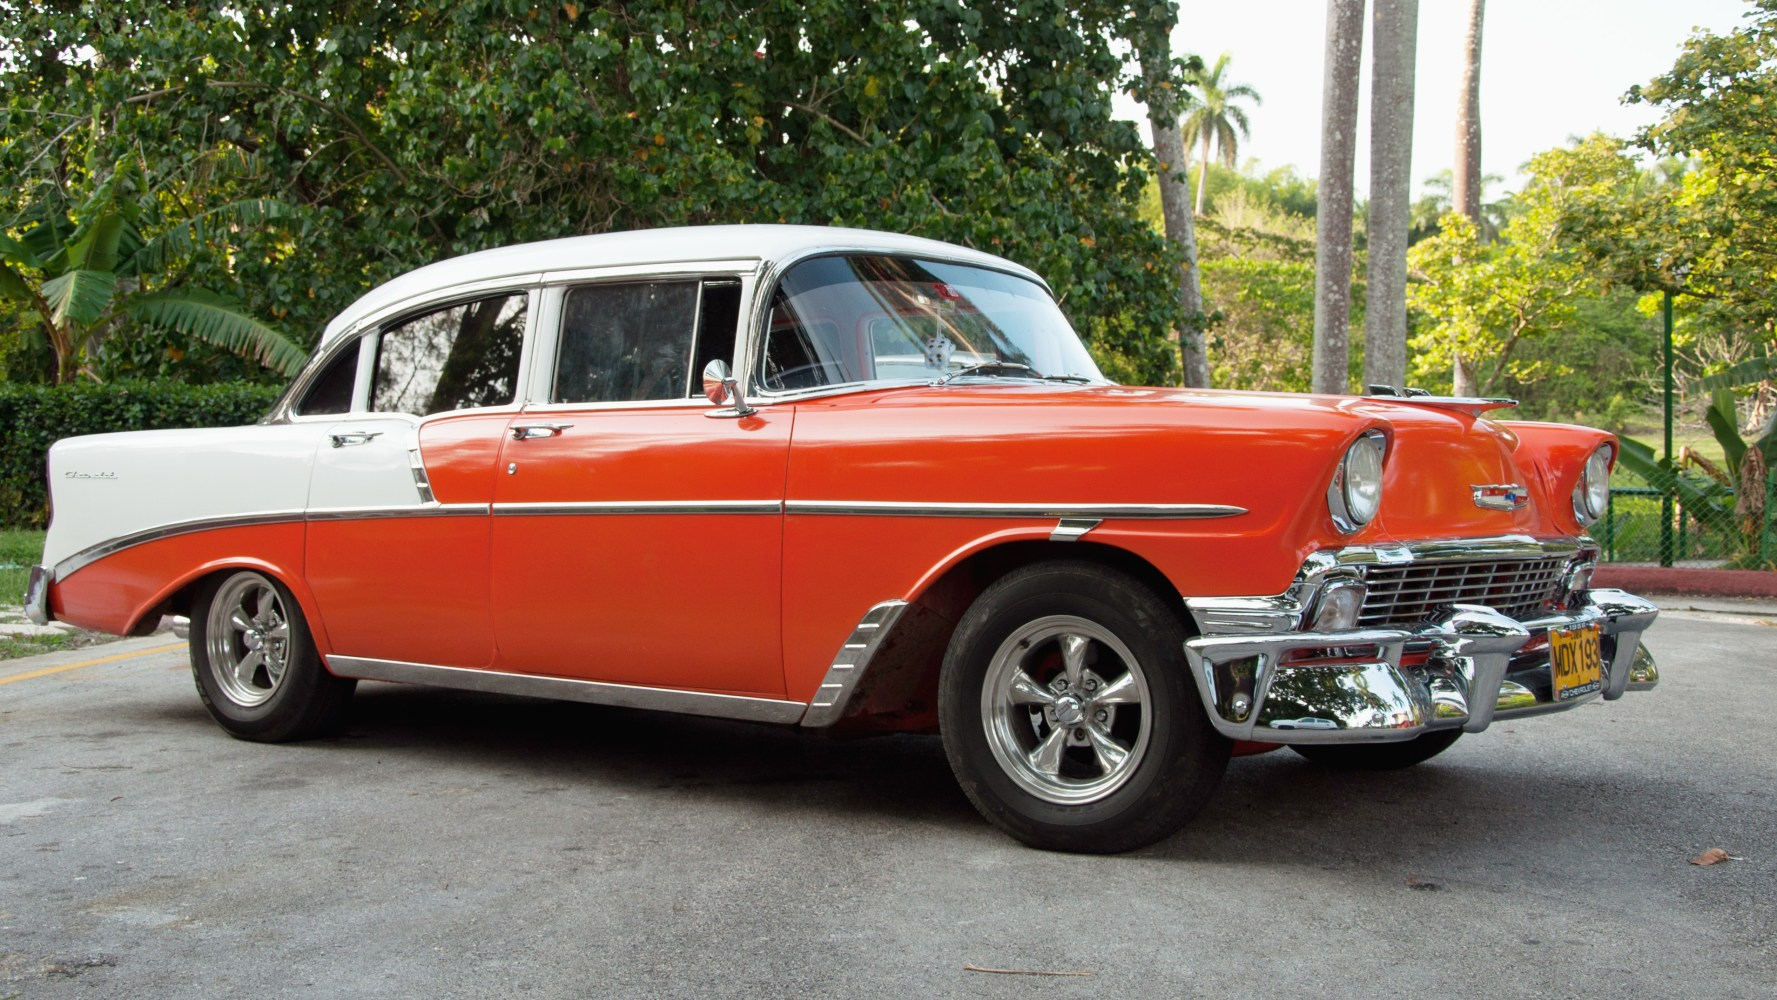 Voices cuba 39 s vintage cars are cool but not their for Old classic american cars